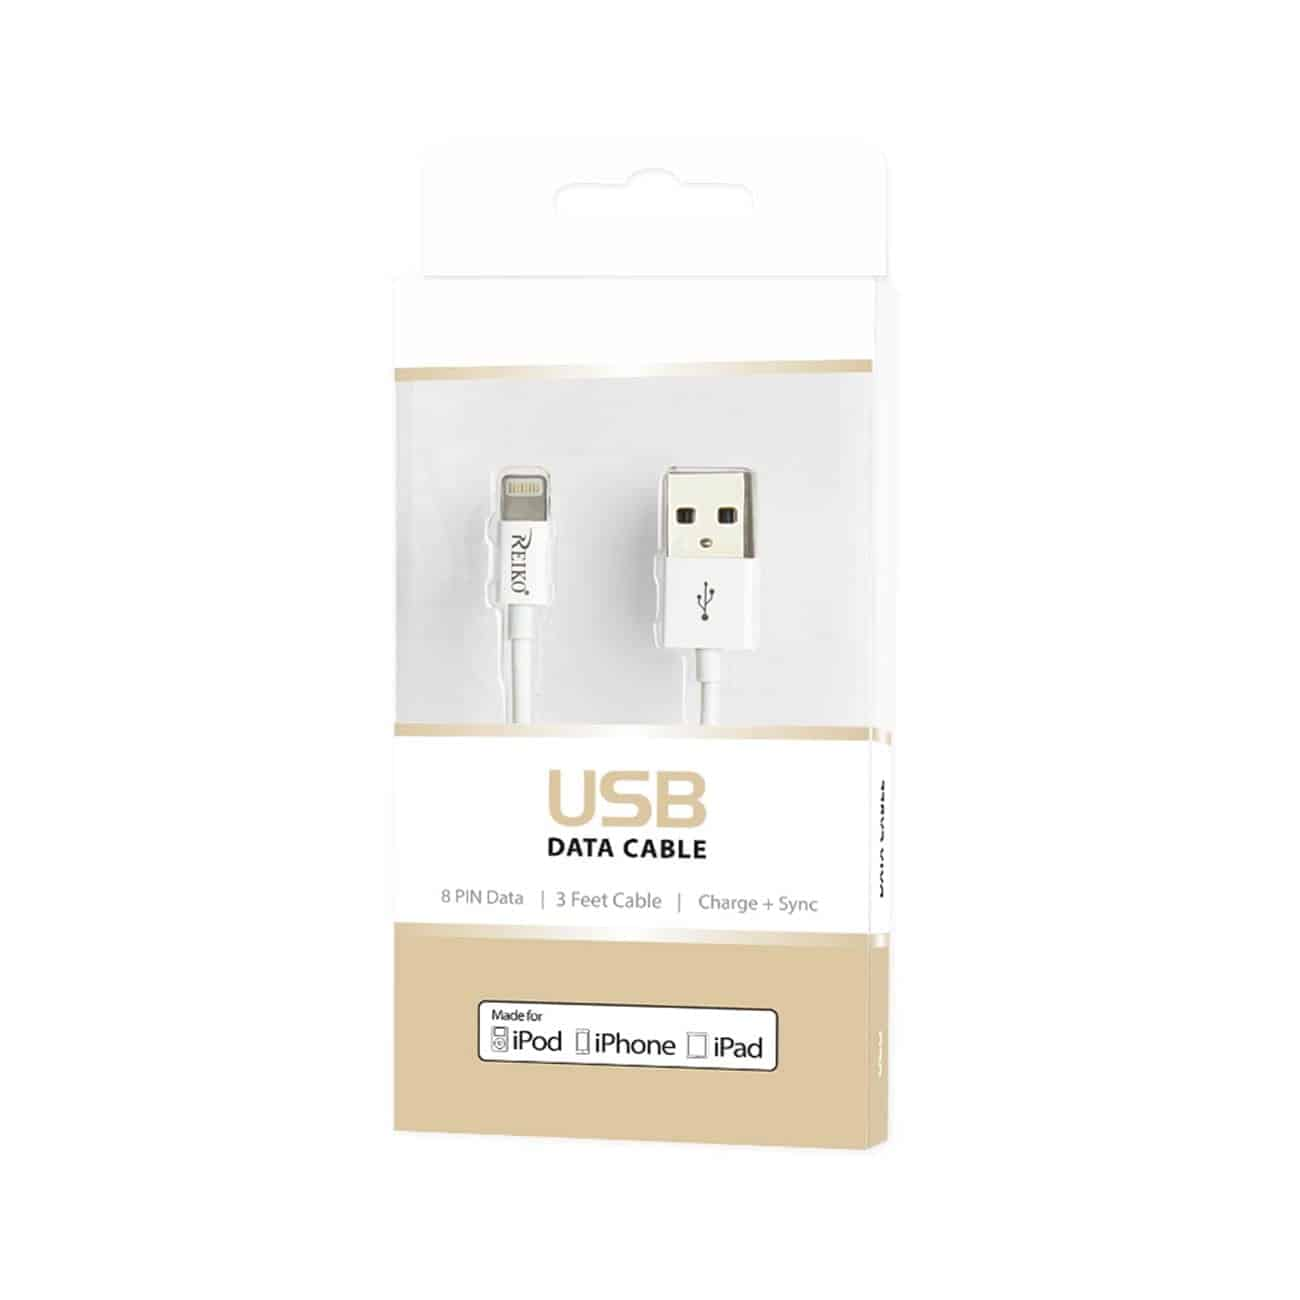 IPHONE 6 3FT LIGHTING CERTIFIED USB DATA CABLE IN WHITE